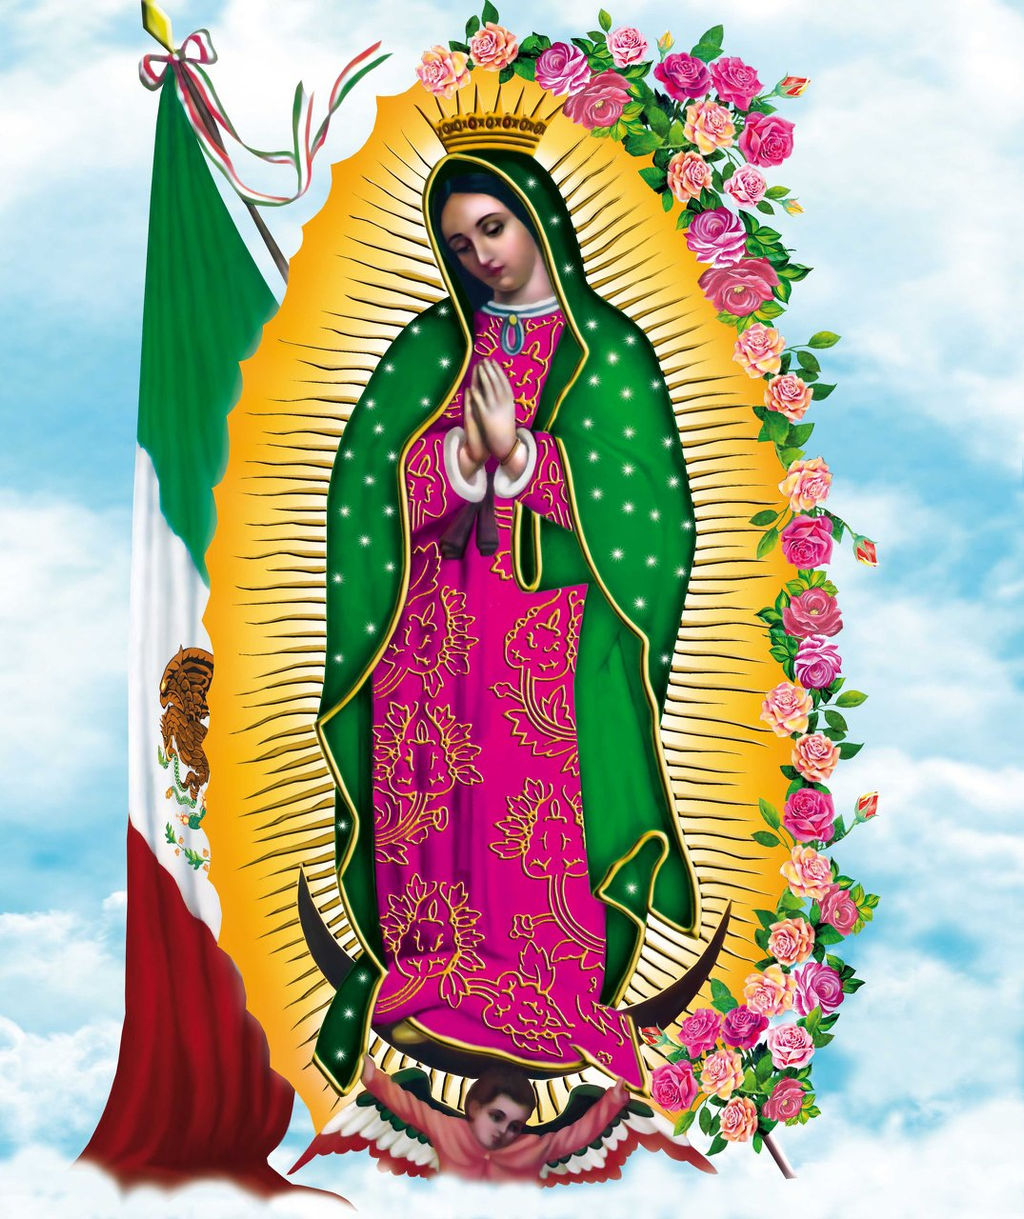 Historical Flags of Our Ancestors - Flags of Mexico